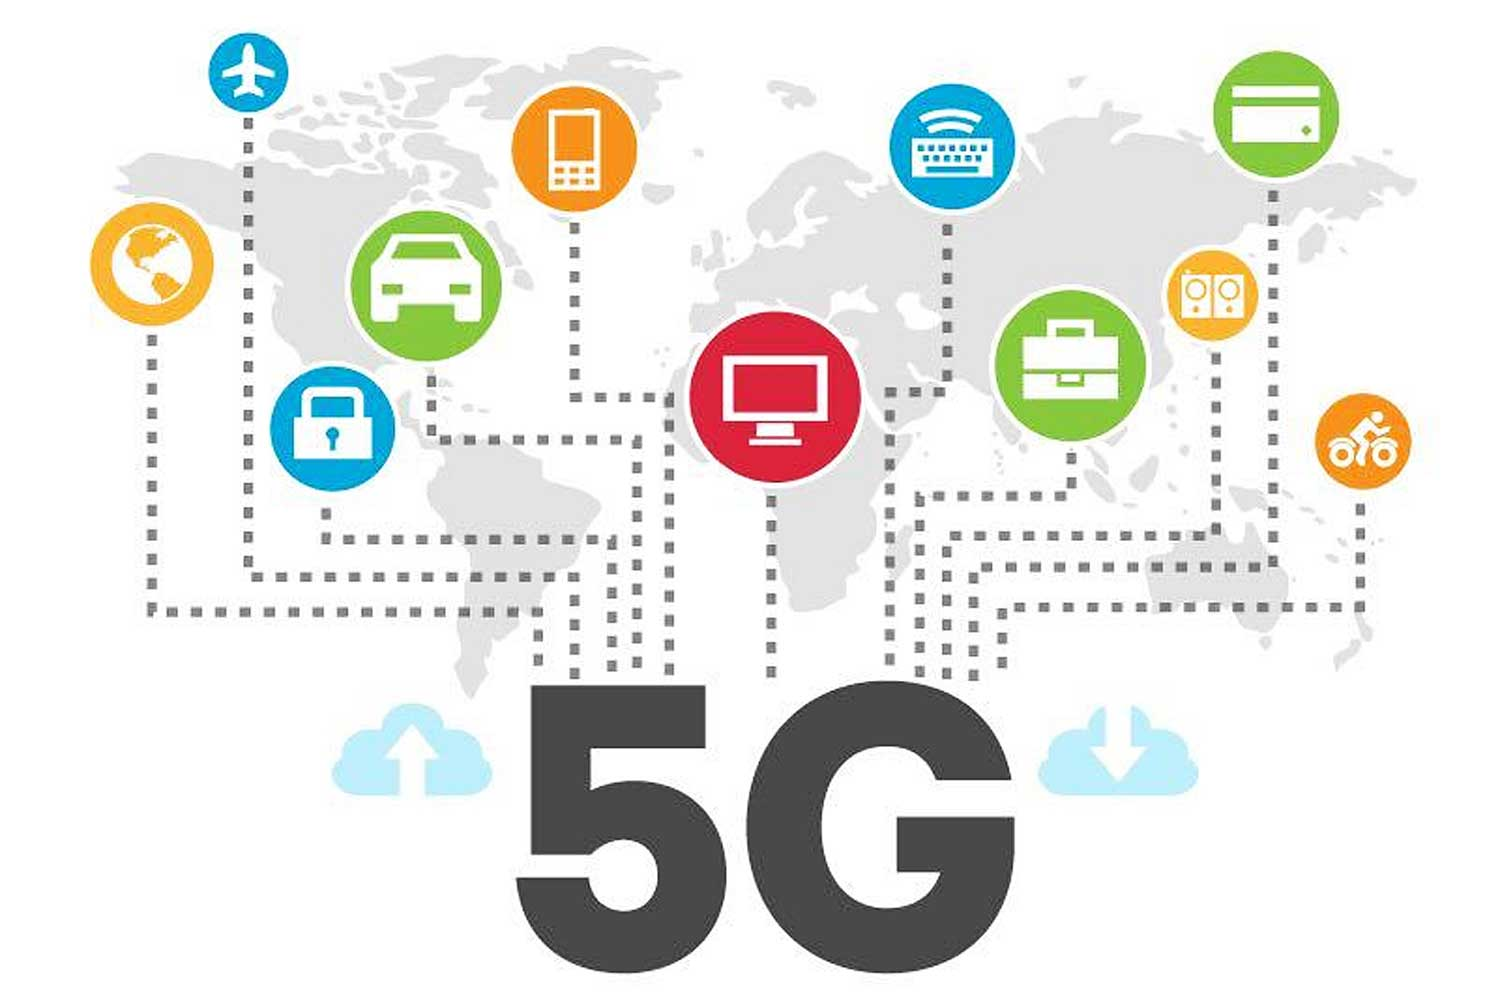 Upgrading the network to provide 5G capabilities is a complex and costly job so there must be a clear business case to justify the investment.